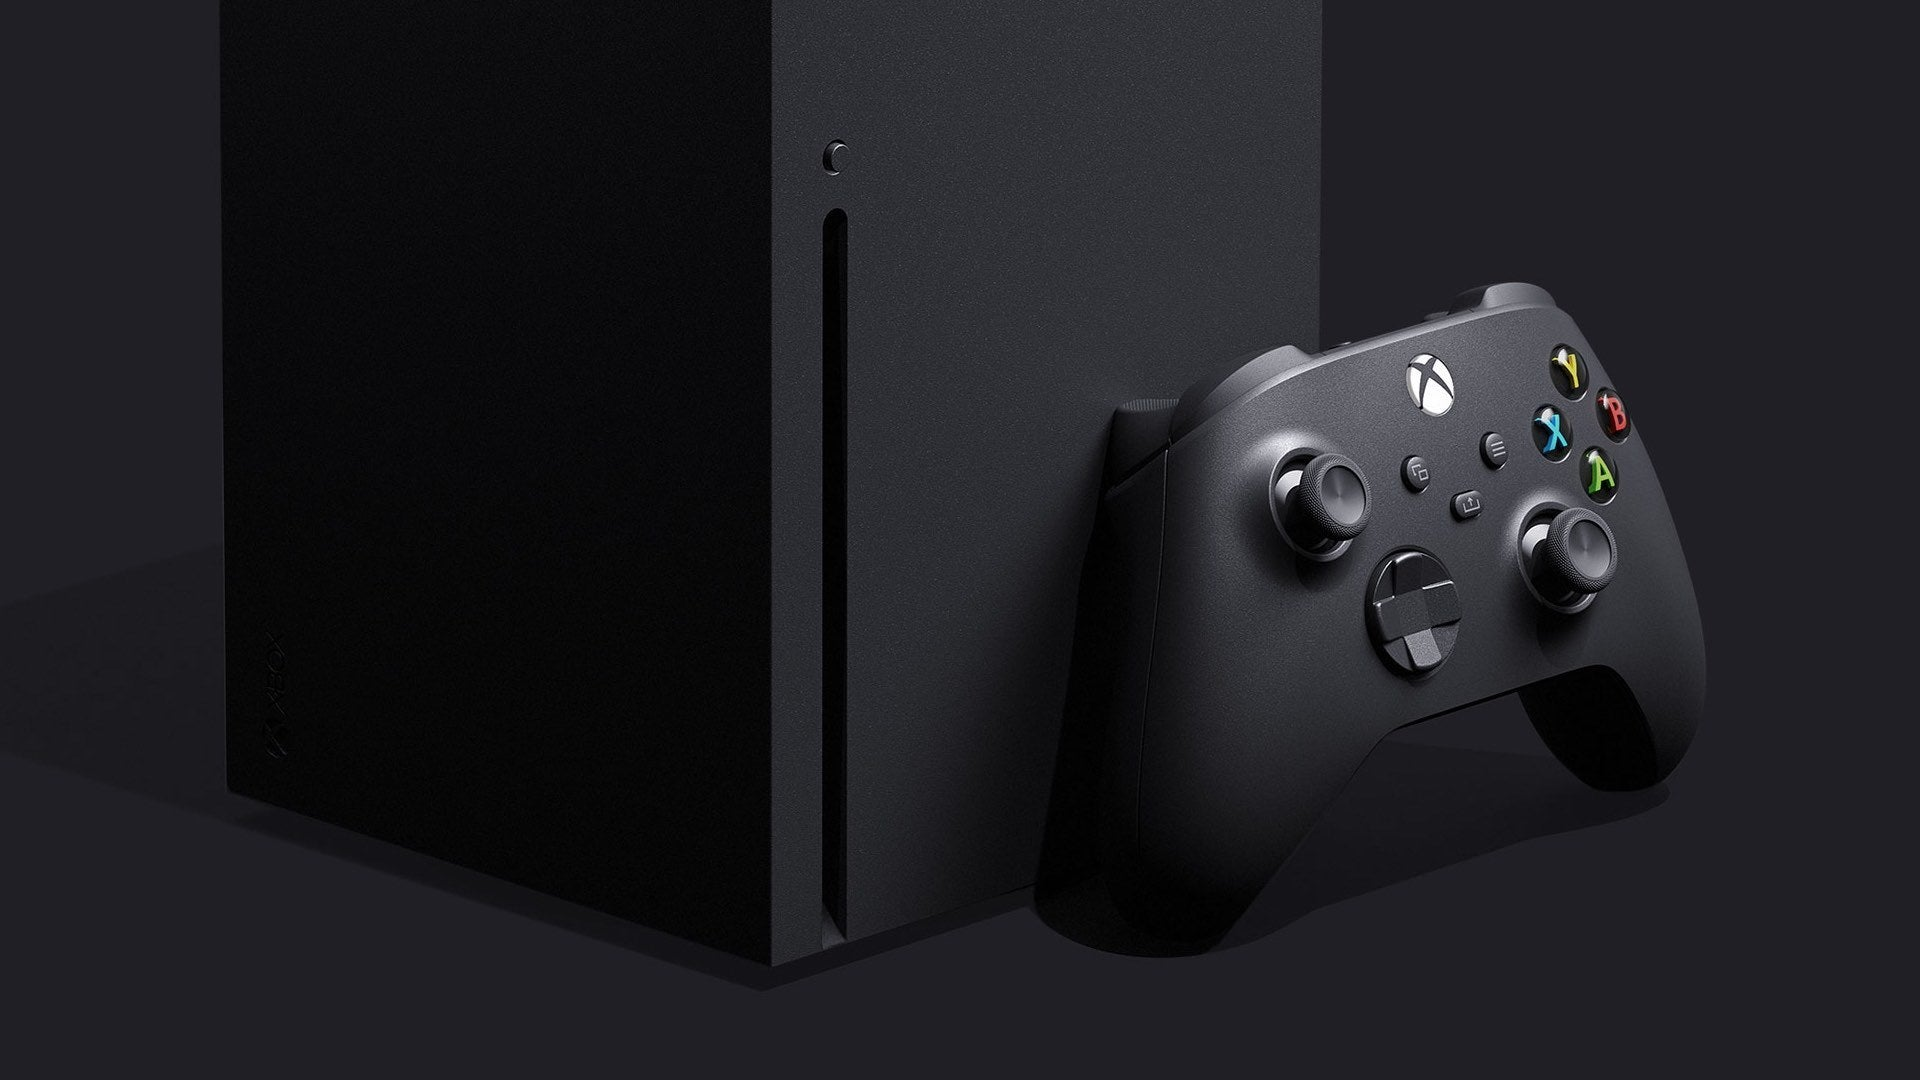 Xbox Series X: Release date, news, specs, games, and more